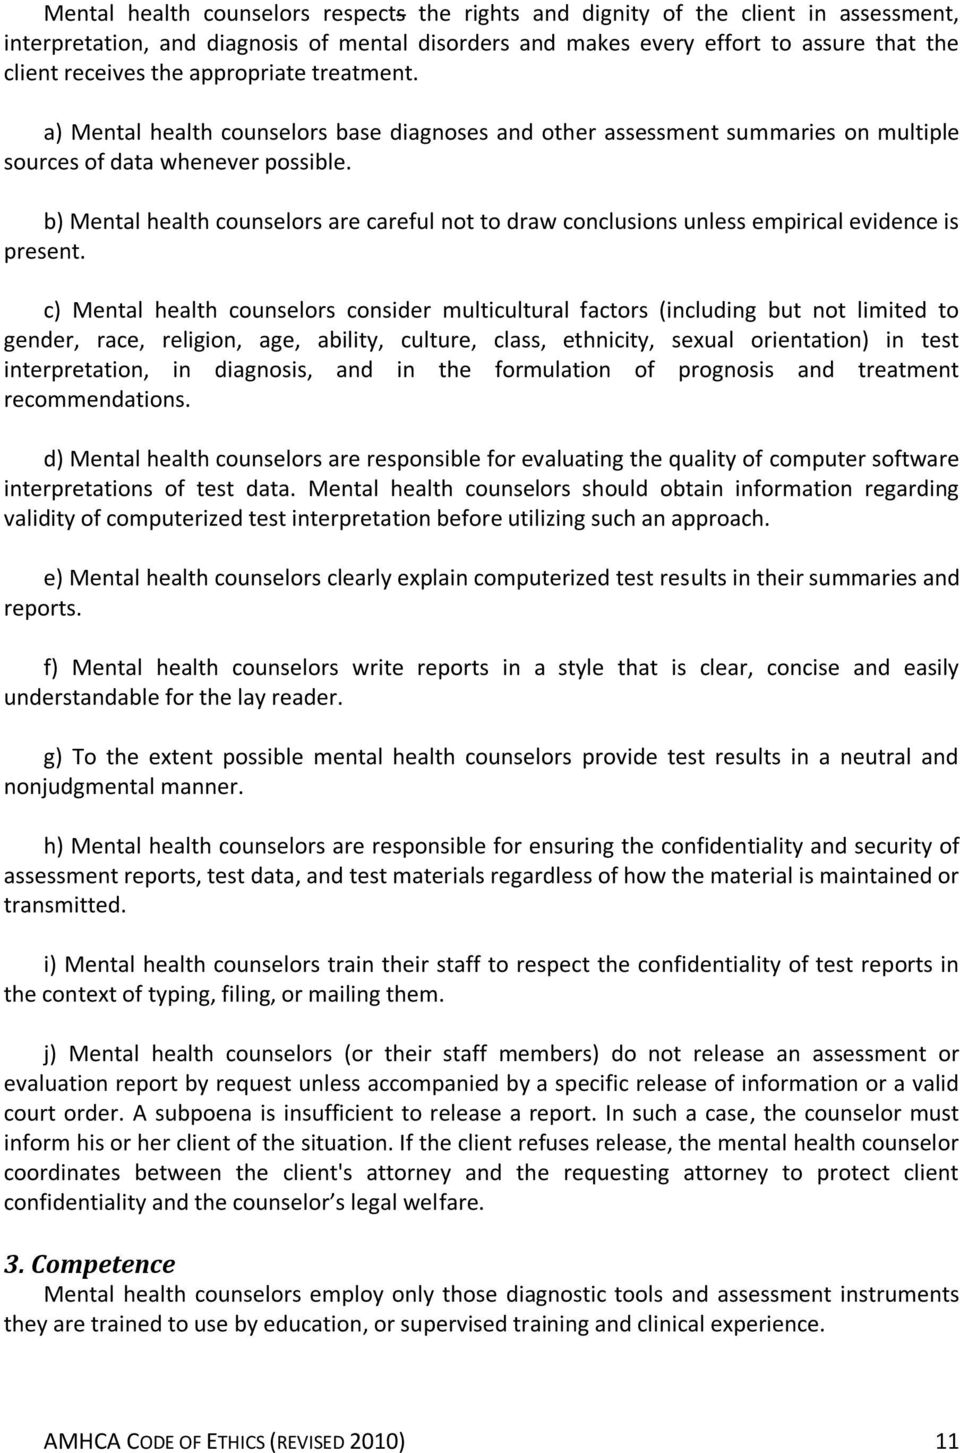 b) Mental health counselors are careful not to draw conclusions unless empirical evidence is present.